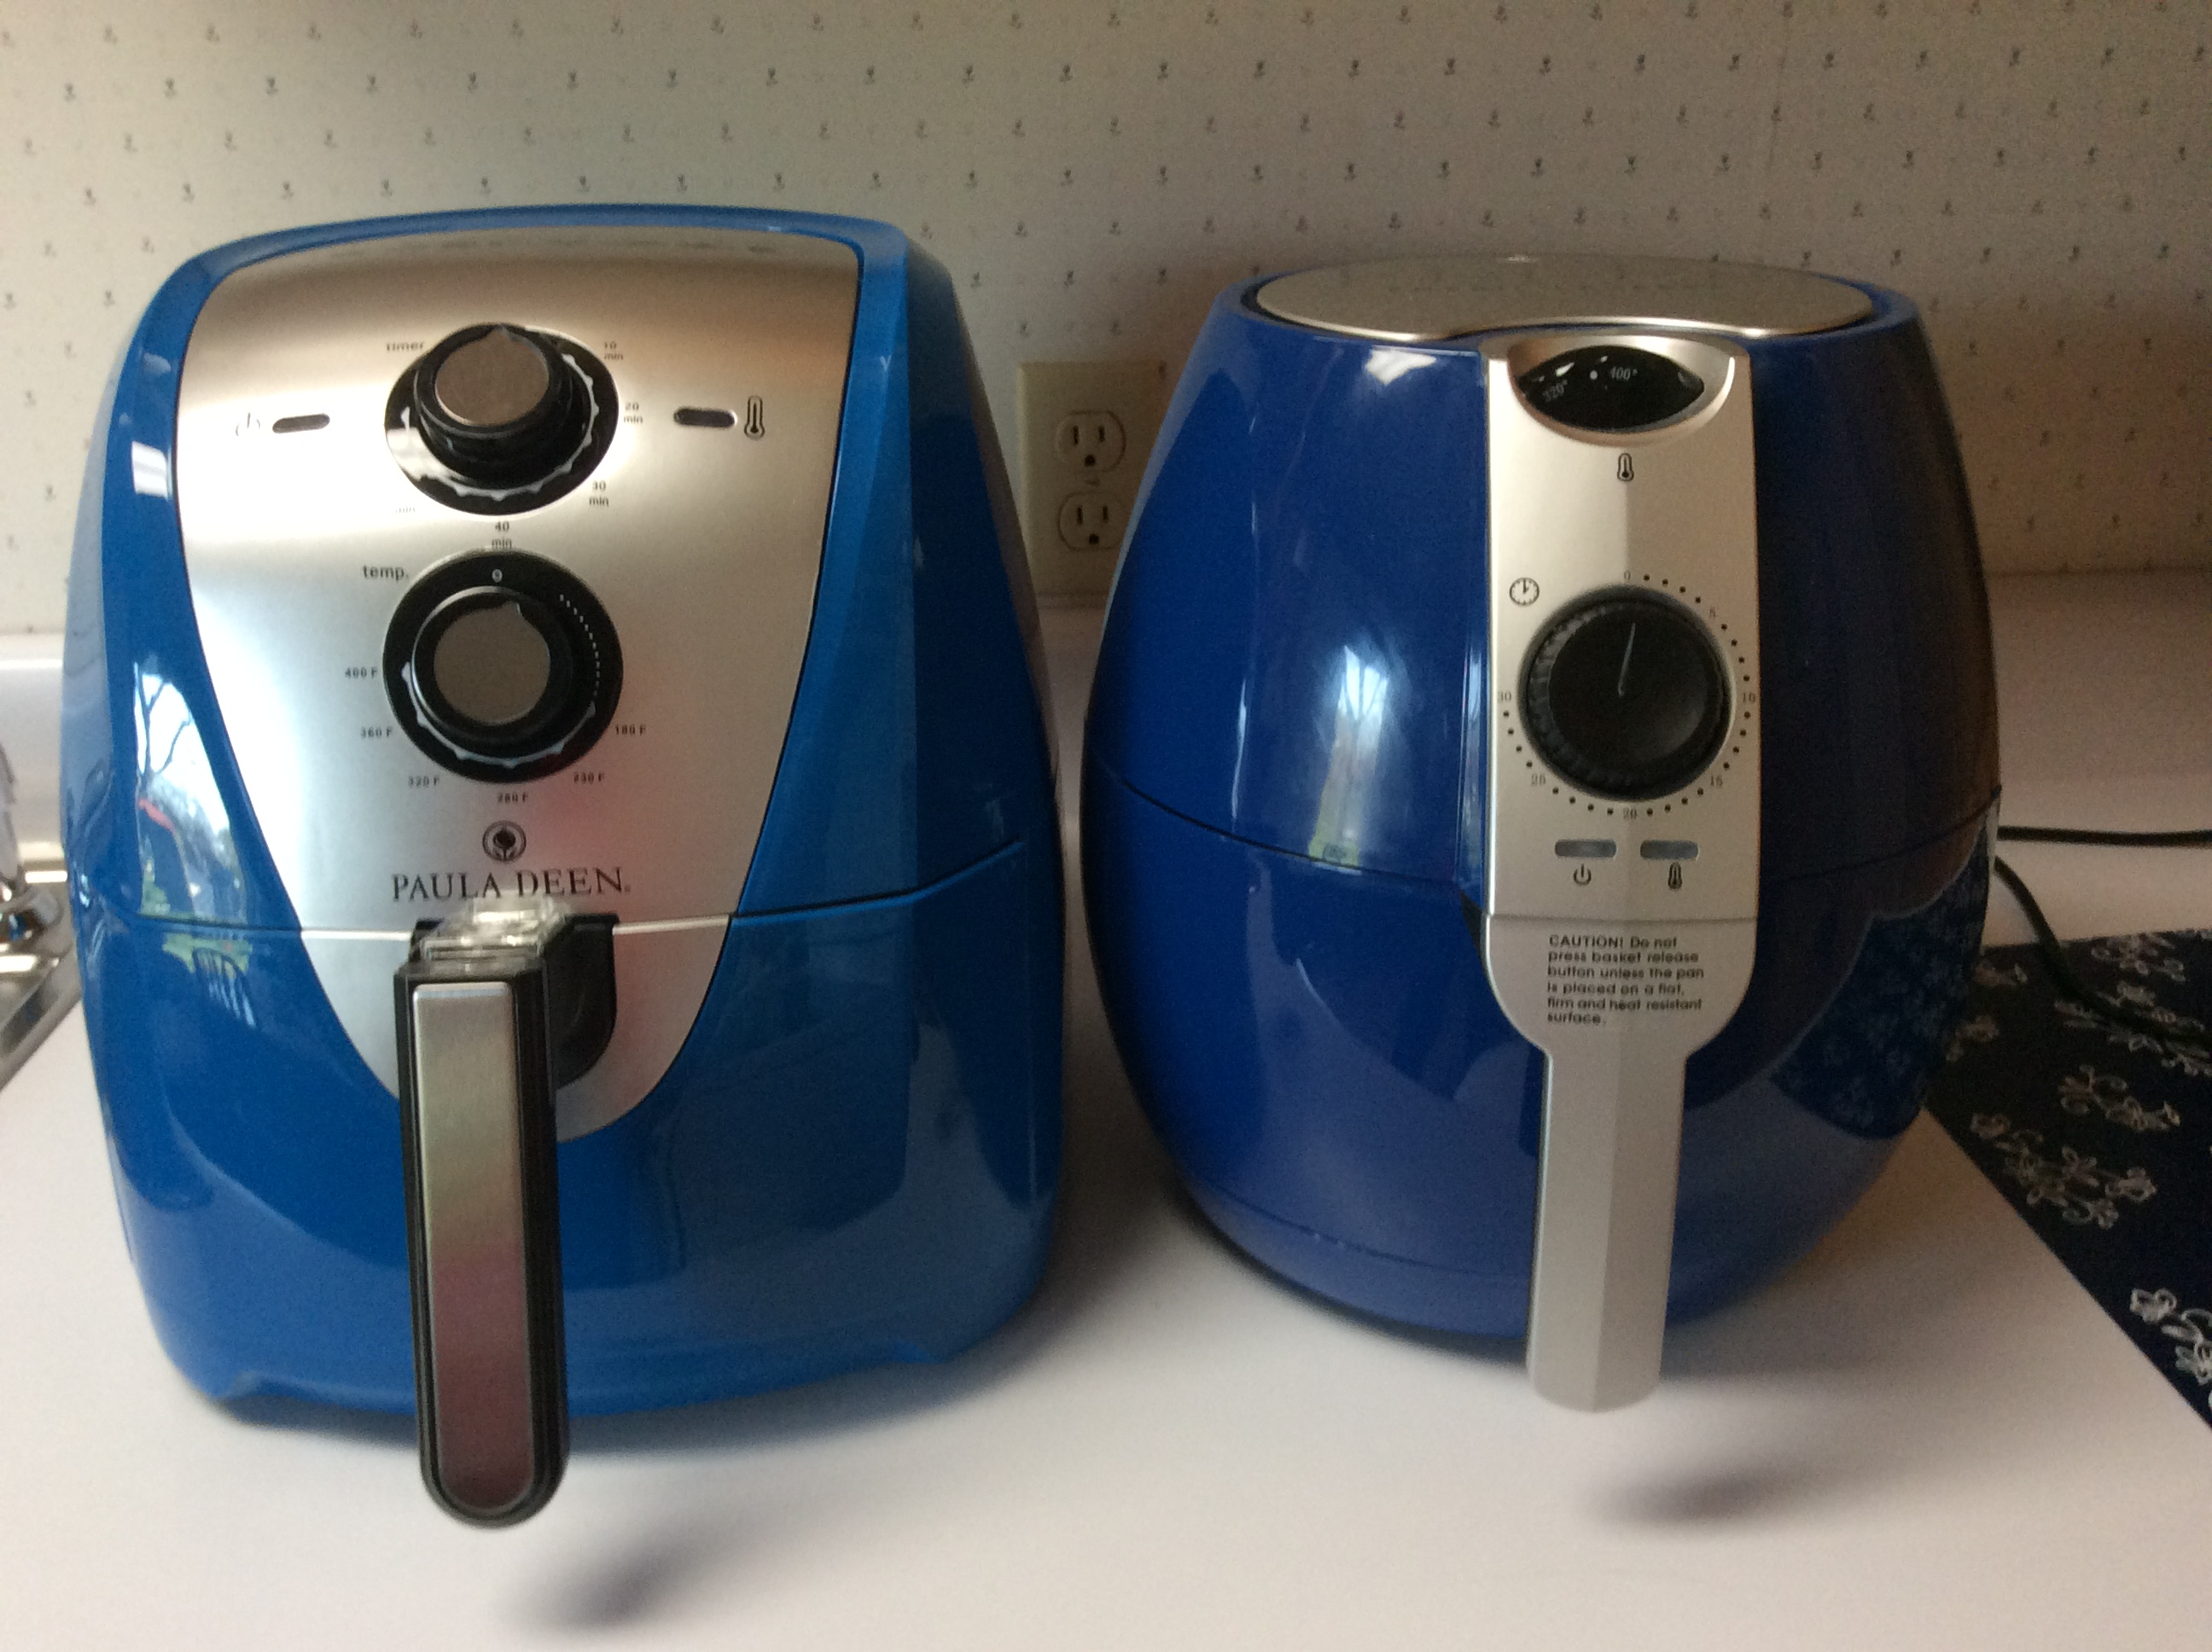 Paula Deen 5.3 quart Air Fryer - Blogs & Forums